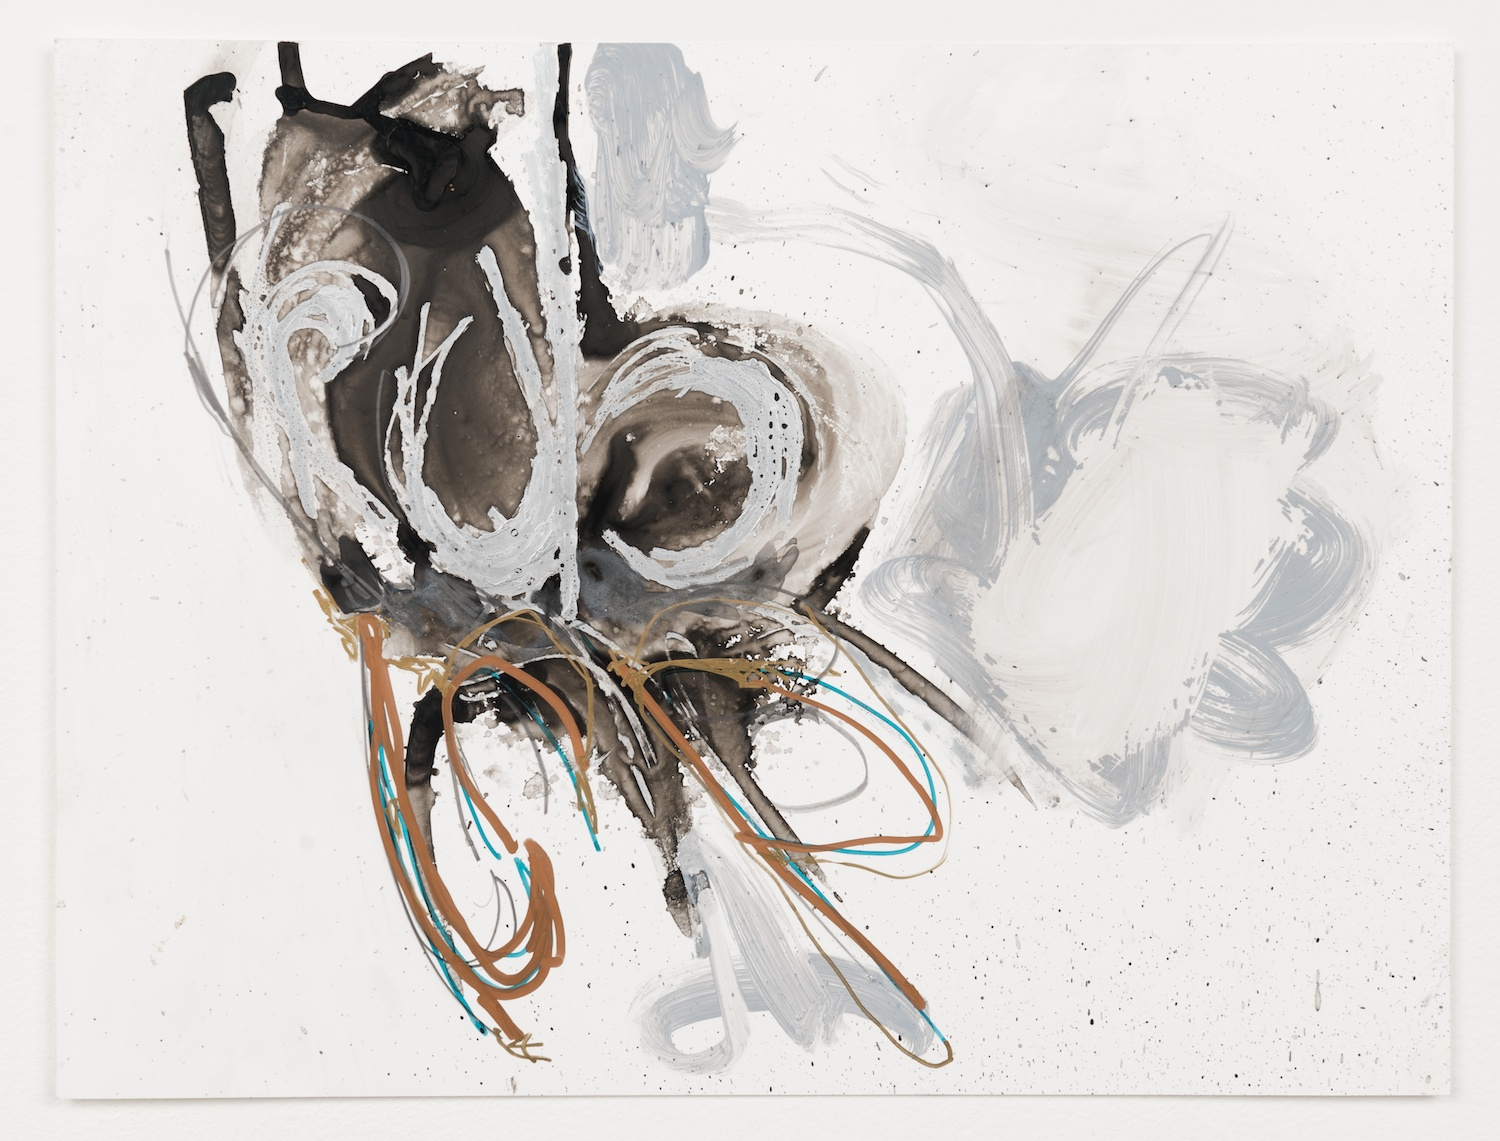 """Suzanne McClelland  Rub  , 2013  Courtesy of the artist; Shane Campbell Gallery, Chicago; Team Gallery, New York Ink, graphite, and paint marker on YUPO  9"""" x 12""""   Retail Value: $2,000   Opening Bid: $1,000"""